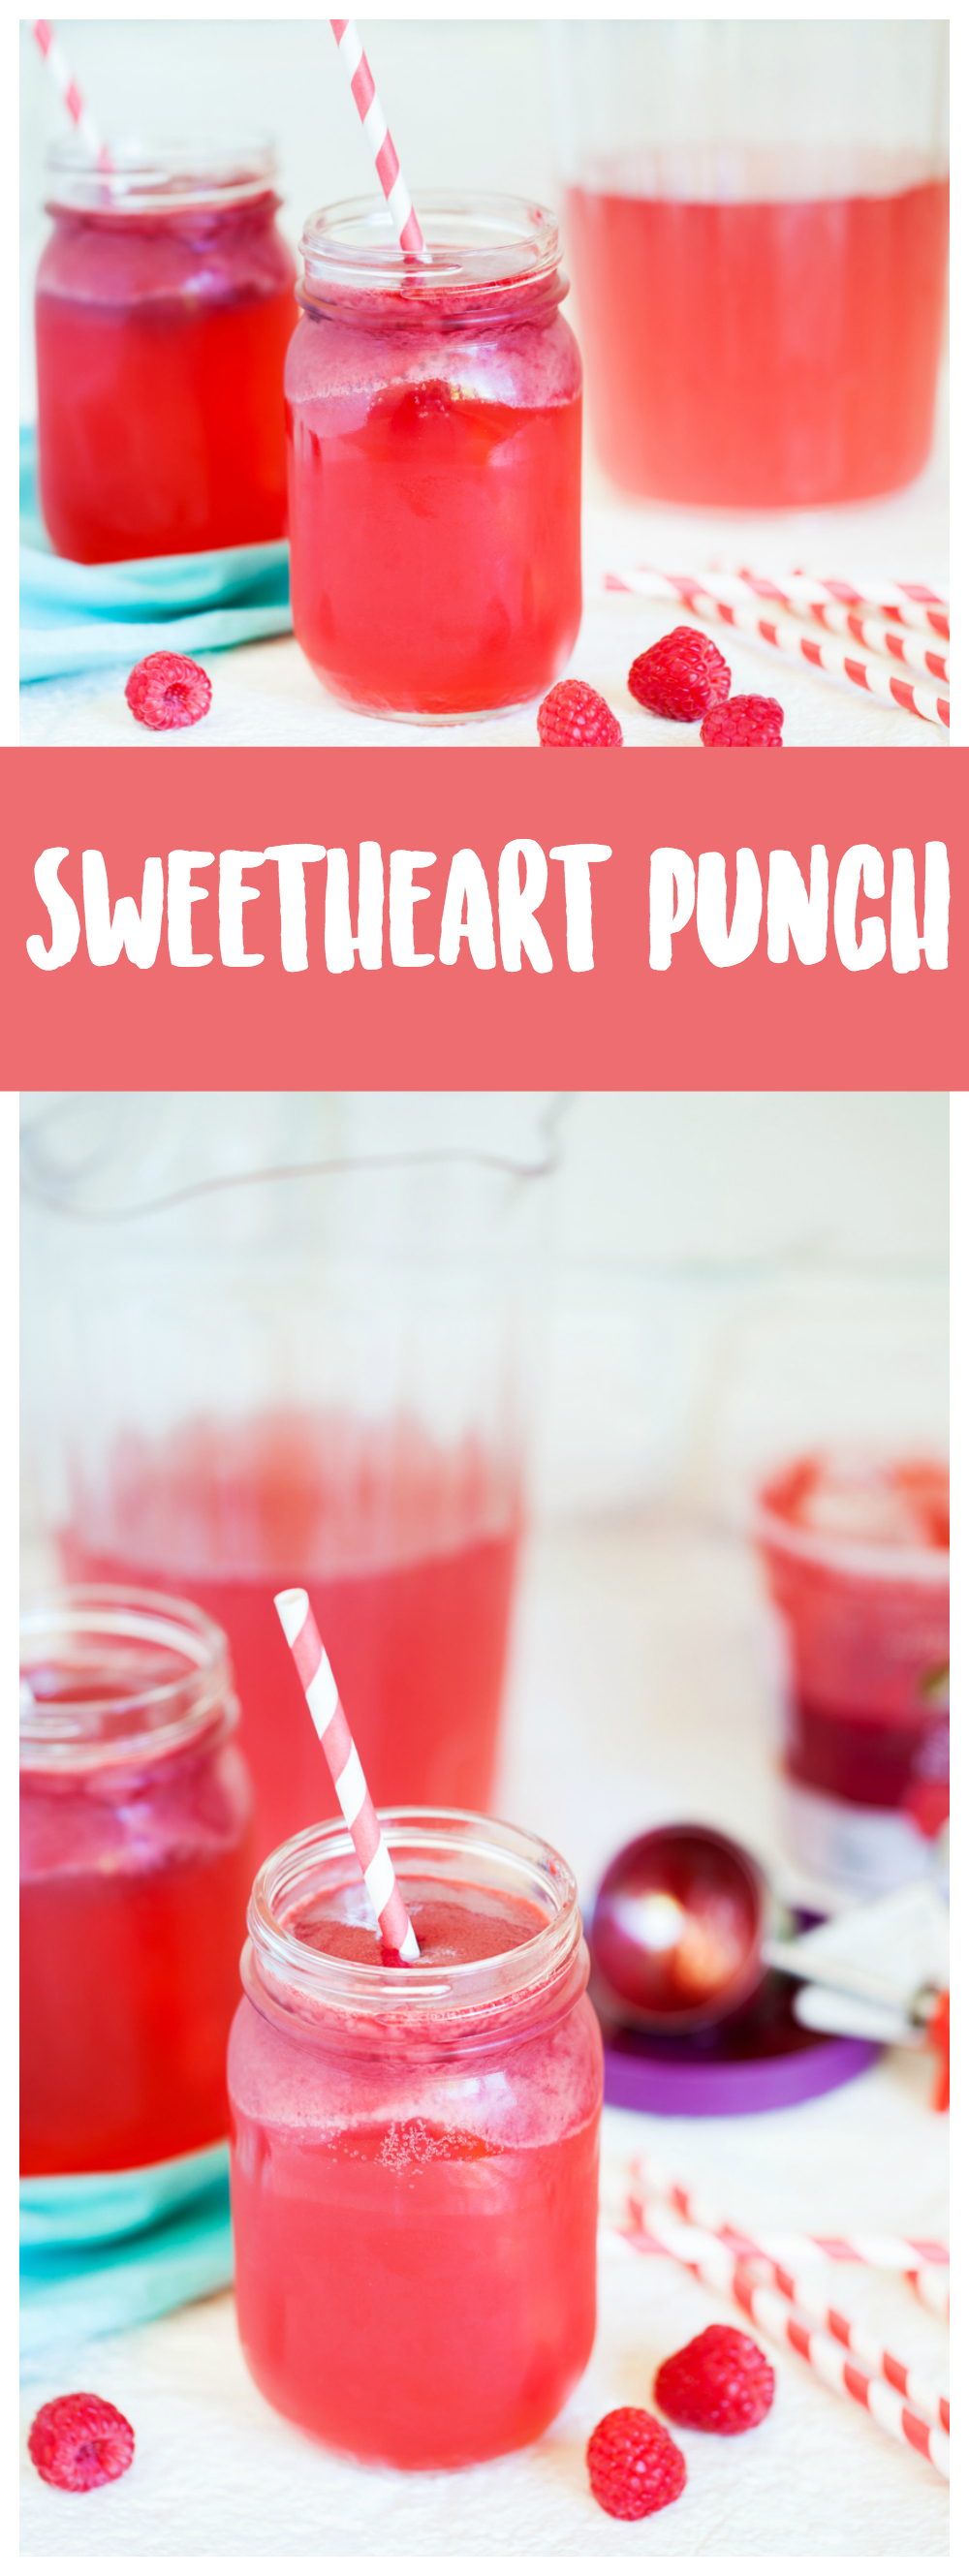 Sweetheart punch is a delicious drink recipe that your guests will love! This beverage is perfect all-year round and is pretty to serve for any occasion!